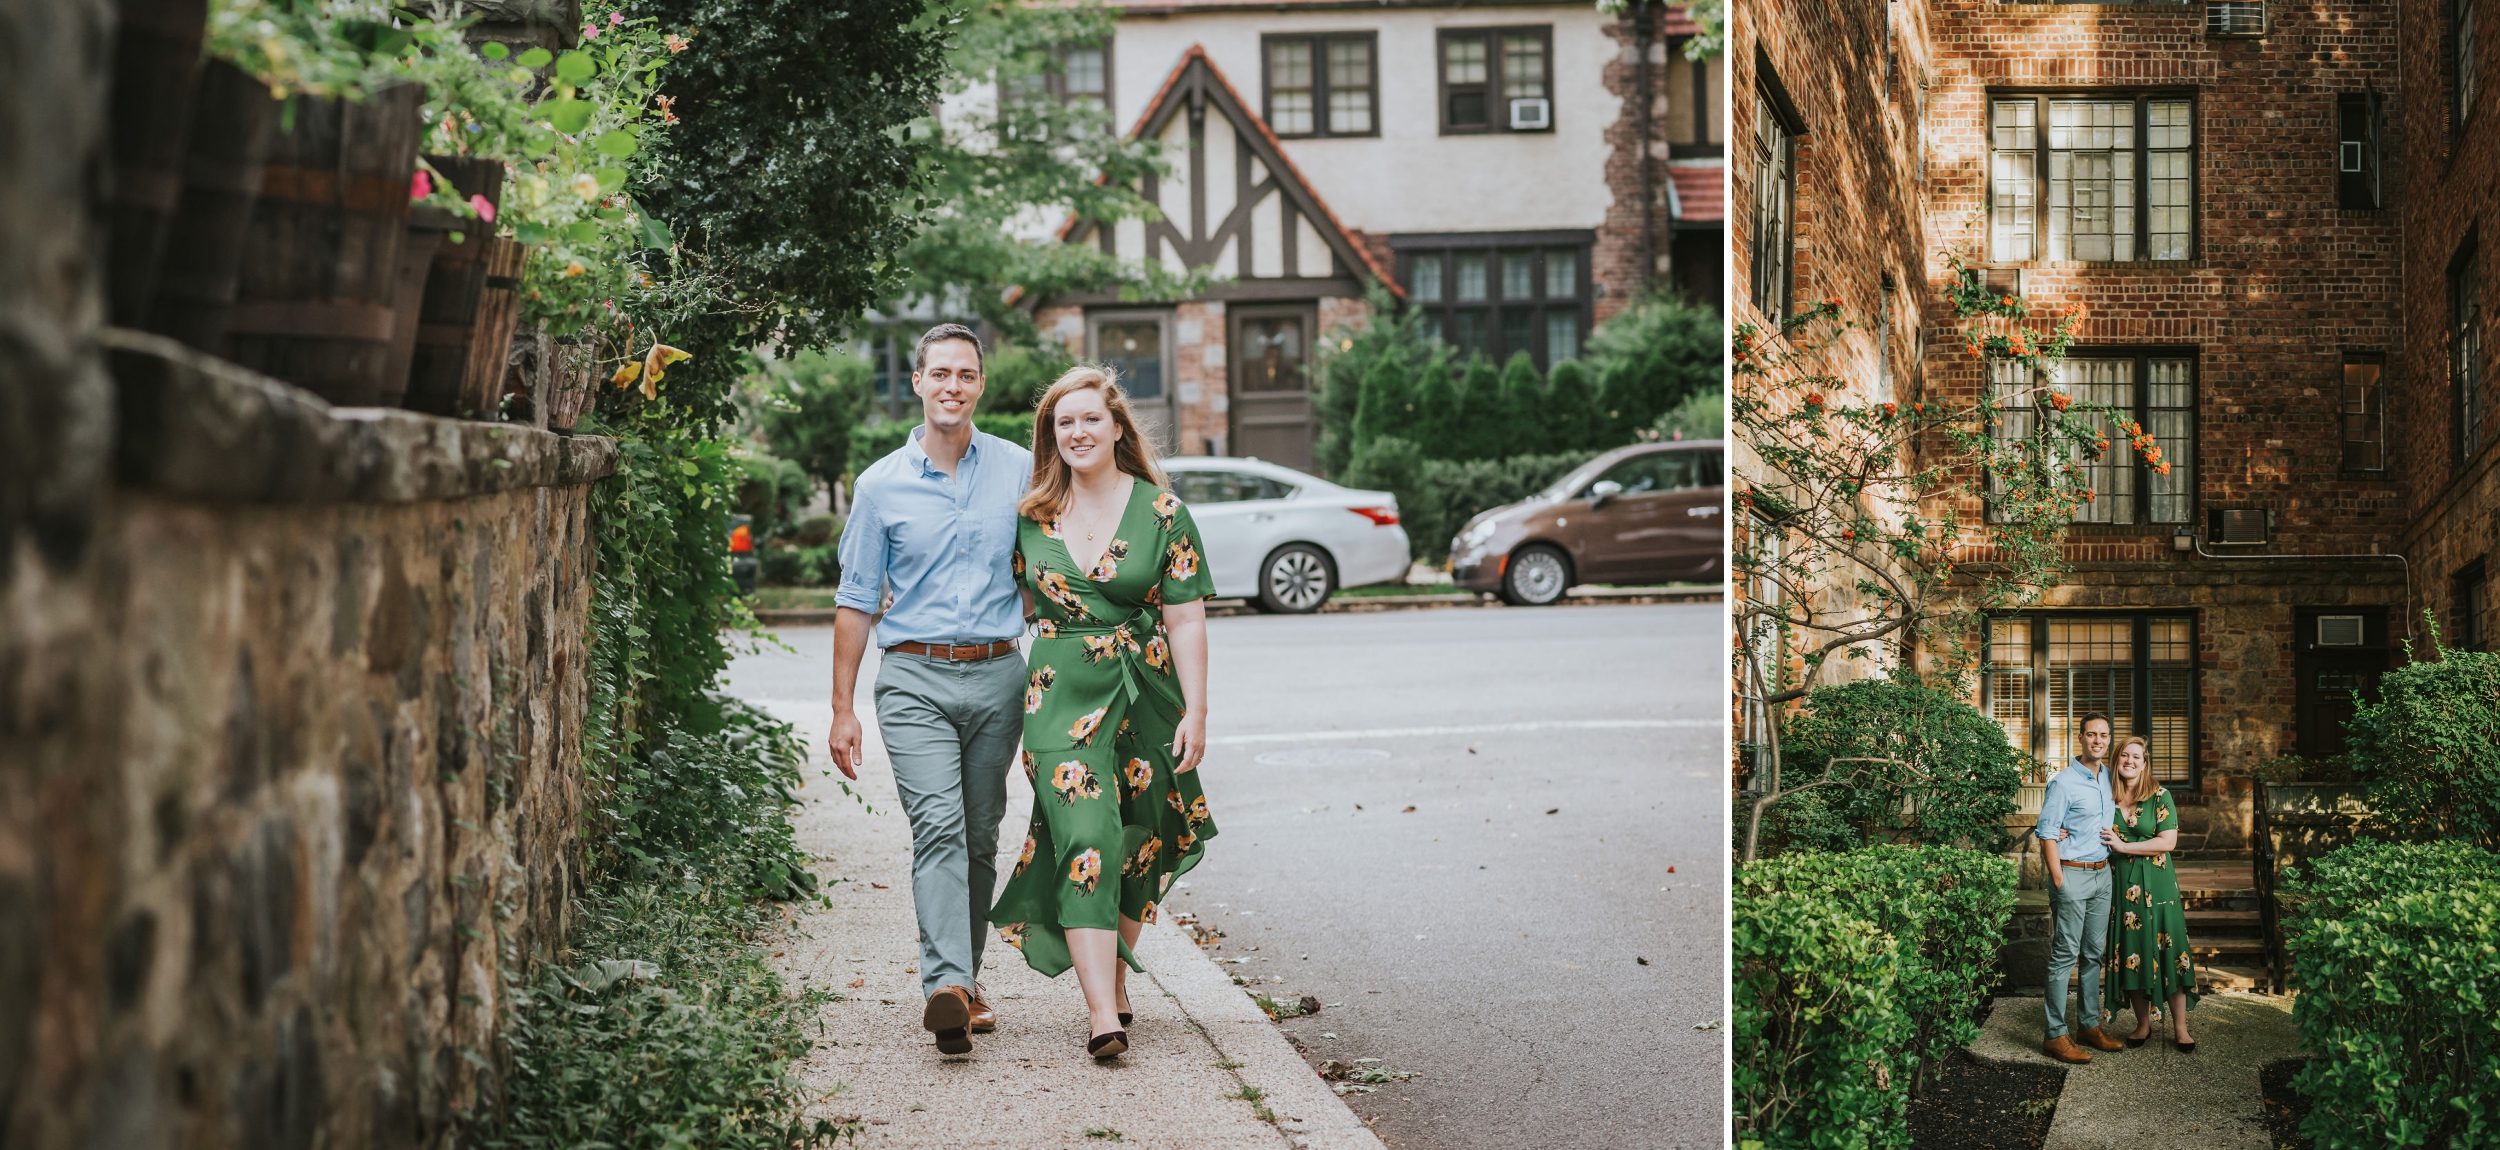 Abigail and Andrew Forest Hills Gardens Engagement NYC 14.jpg